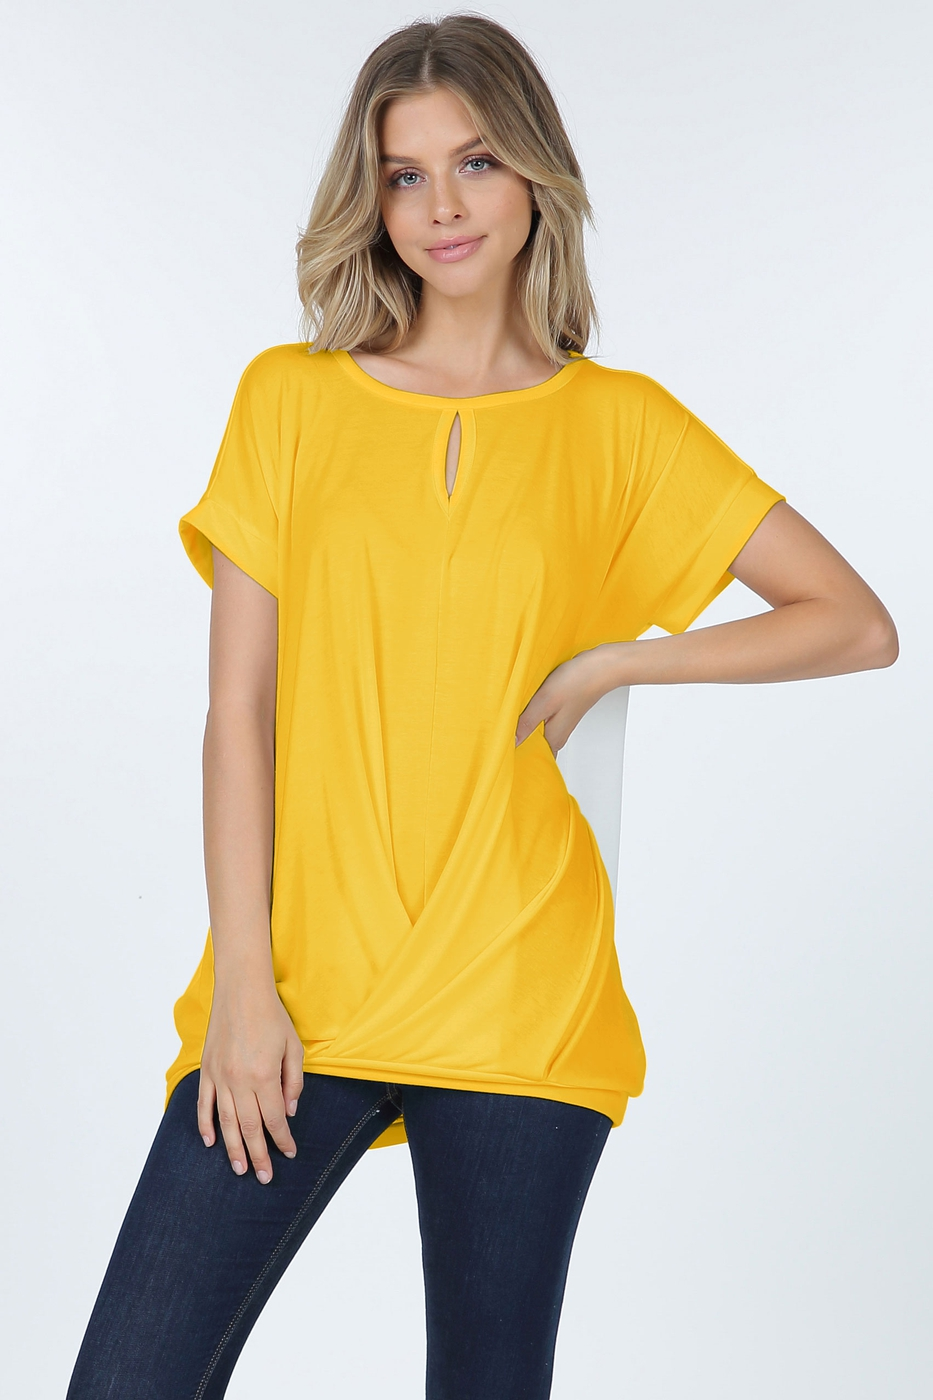 Short Sleeve Cross Over Tunic Top Wi - orangeshine.com